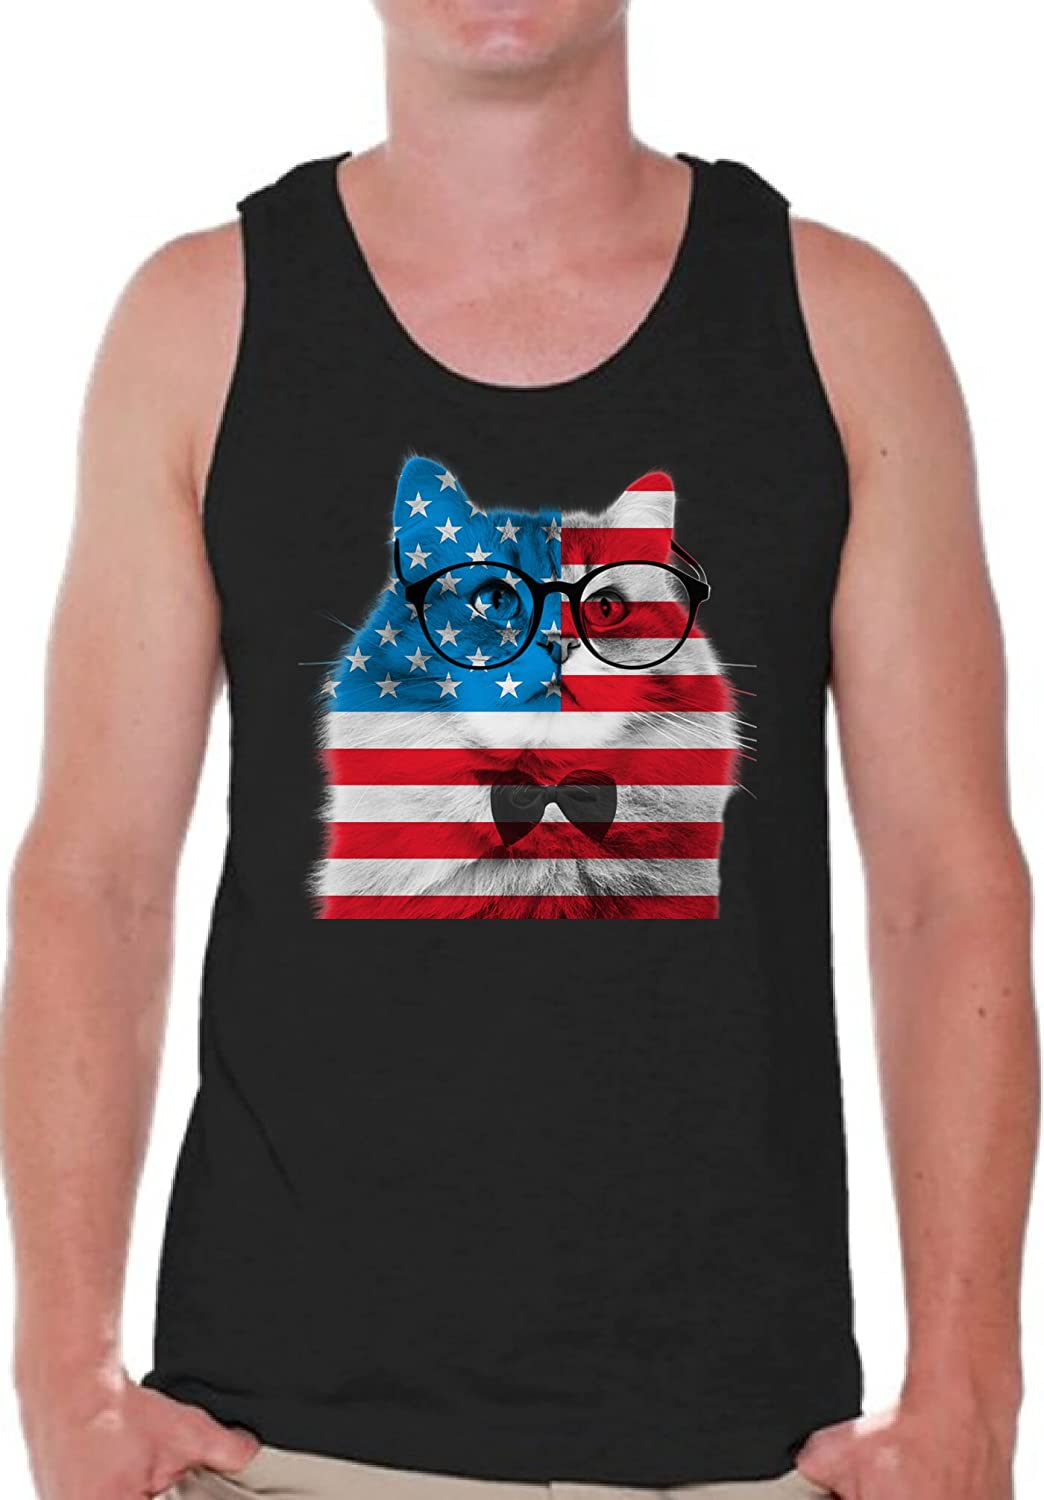 359f089381f73 Amazon.com  Pekatees USA Tanks for Men American Cat Tank Top Patriotic  Gifts for Him  Clothing